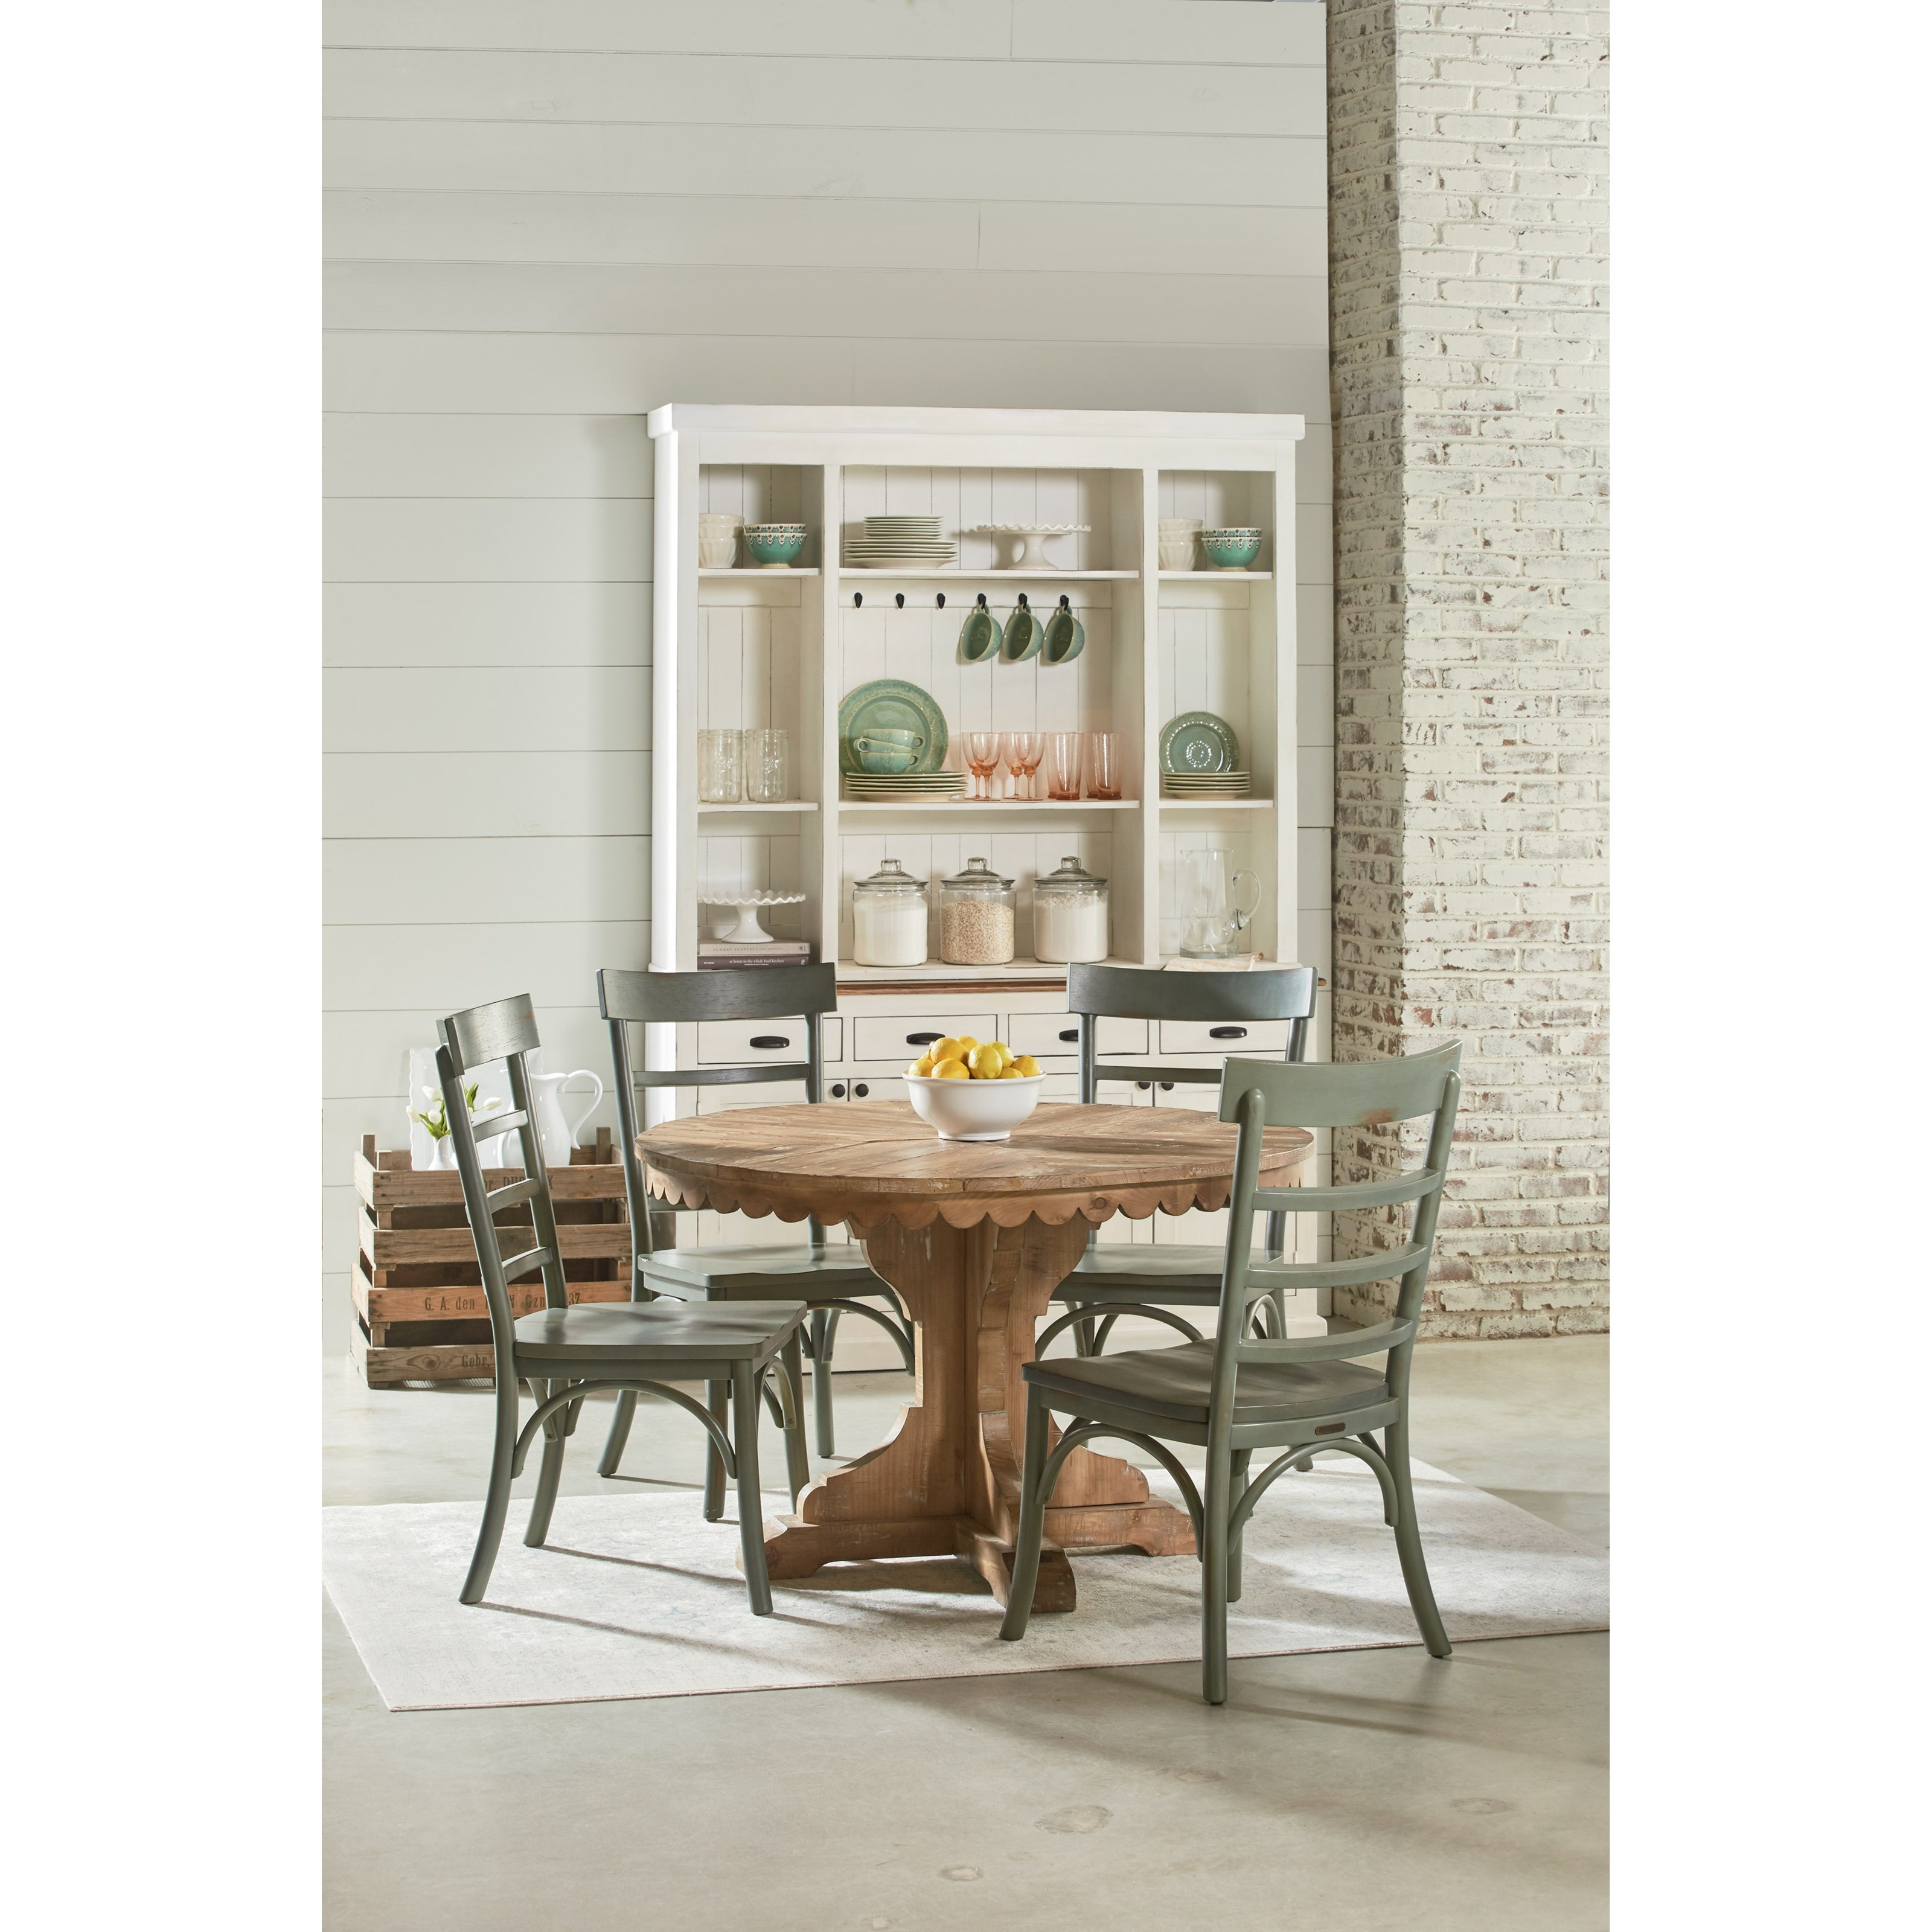 Magnolia Home By Joanna Gaines Farmhouse Five Piece Round Table And Chair Set Olinde 39 S